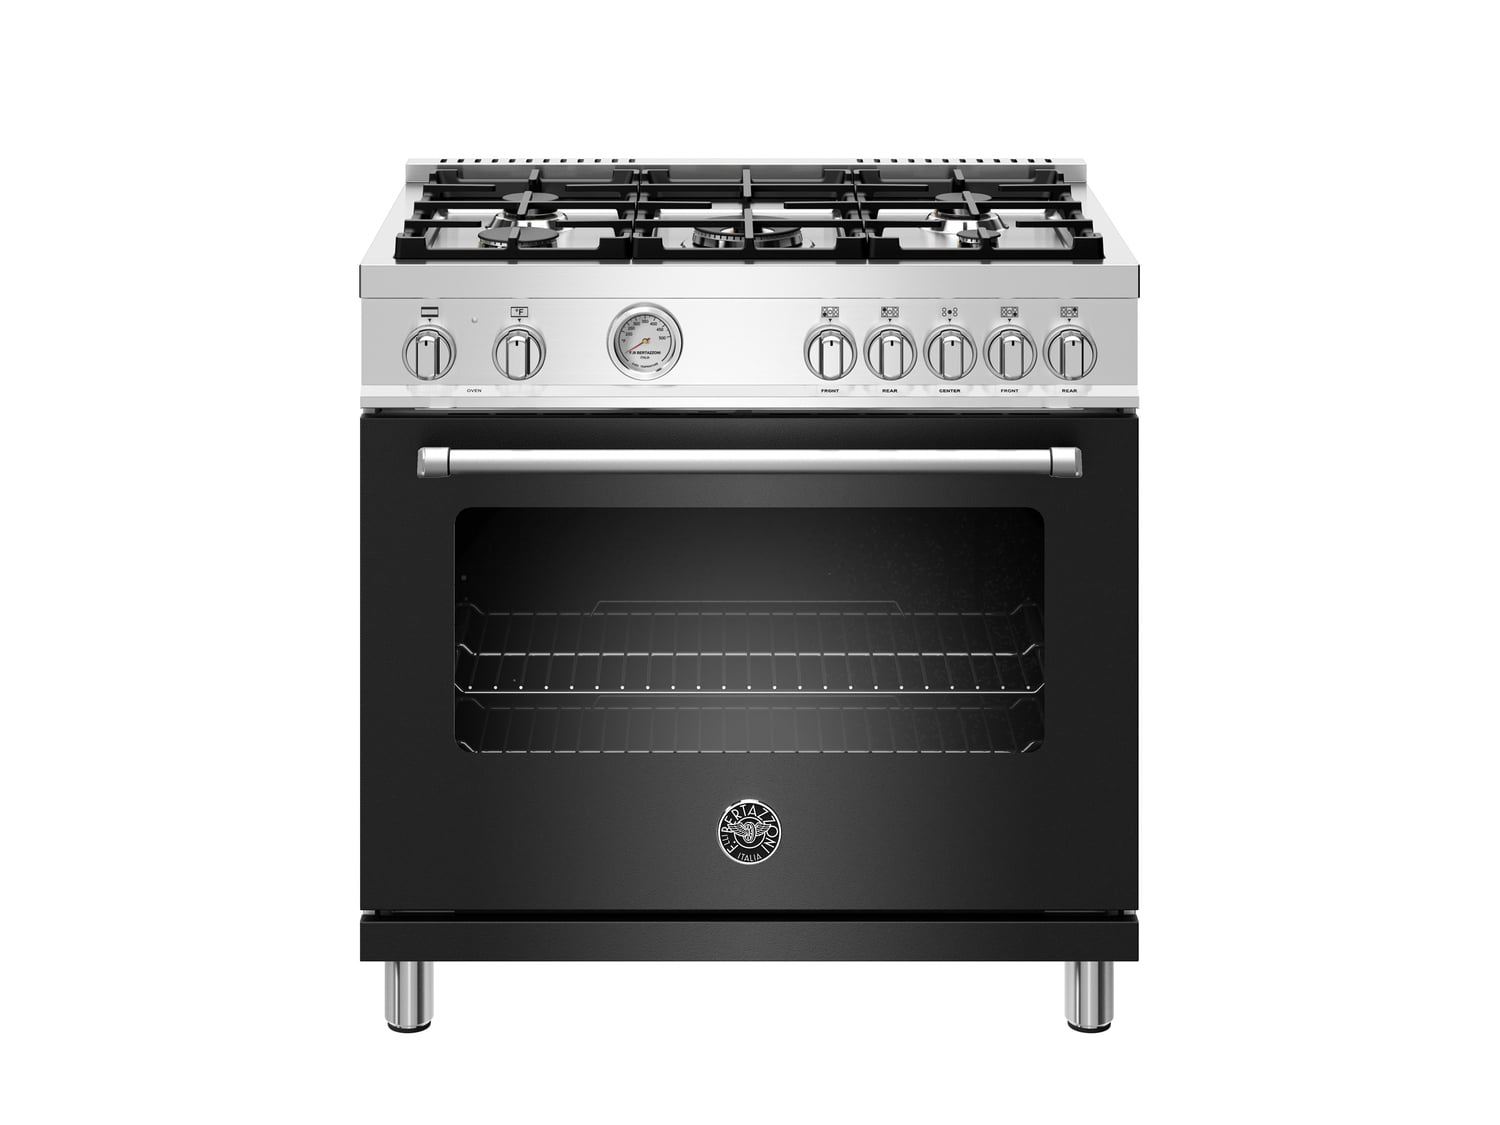 Load image into Gallery viewer, Bertazzoni MAST365DFMNEE 36 Inch Dual Fuel Range, 5 Burner, Electric Oven Nero Matt